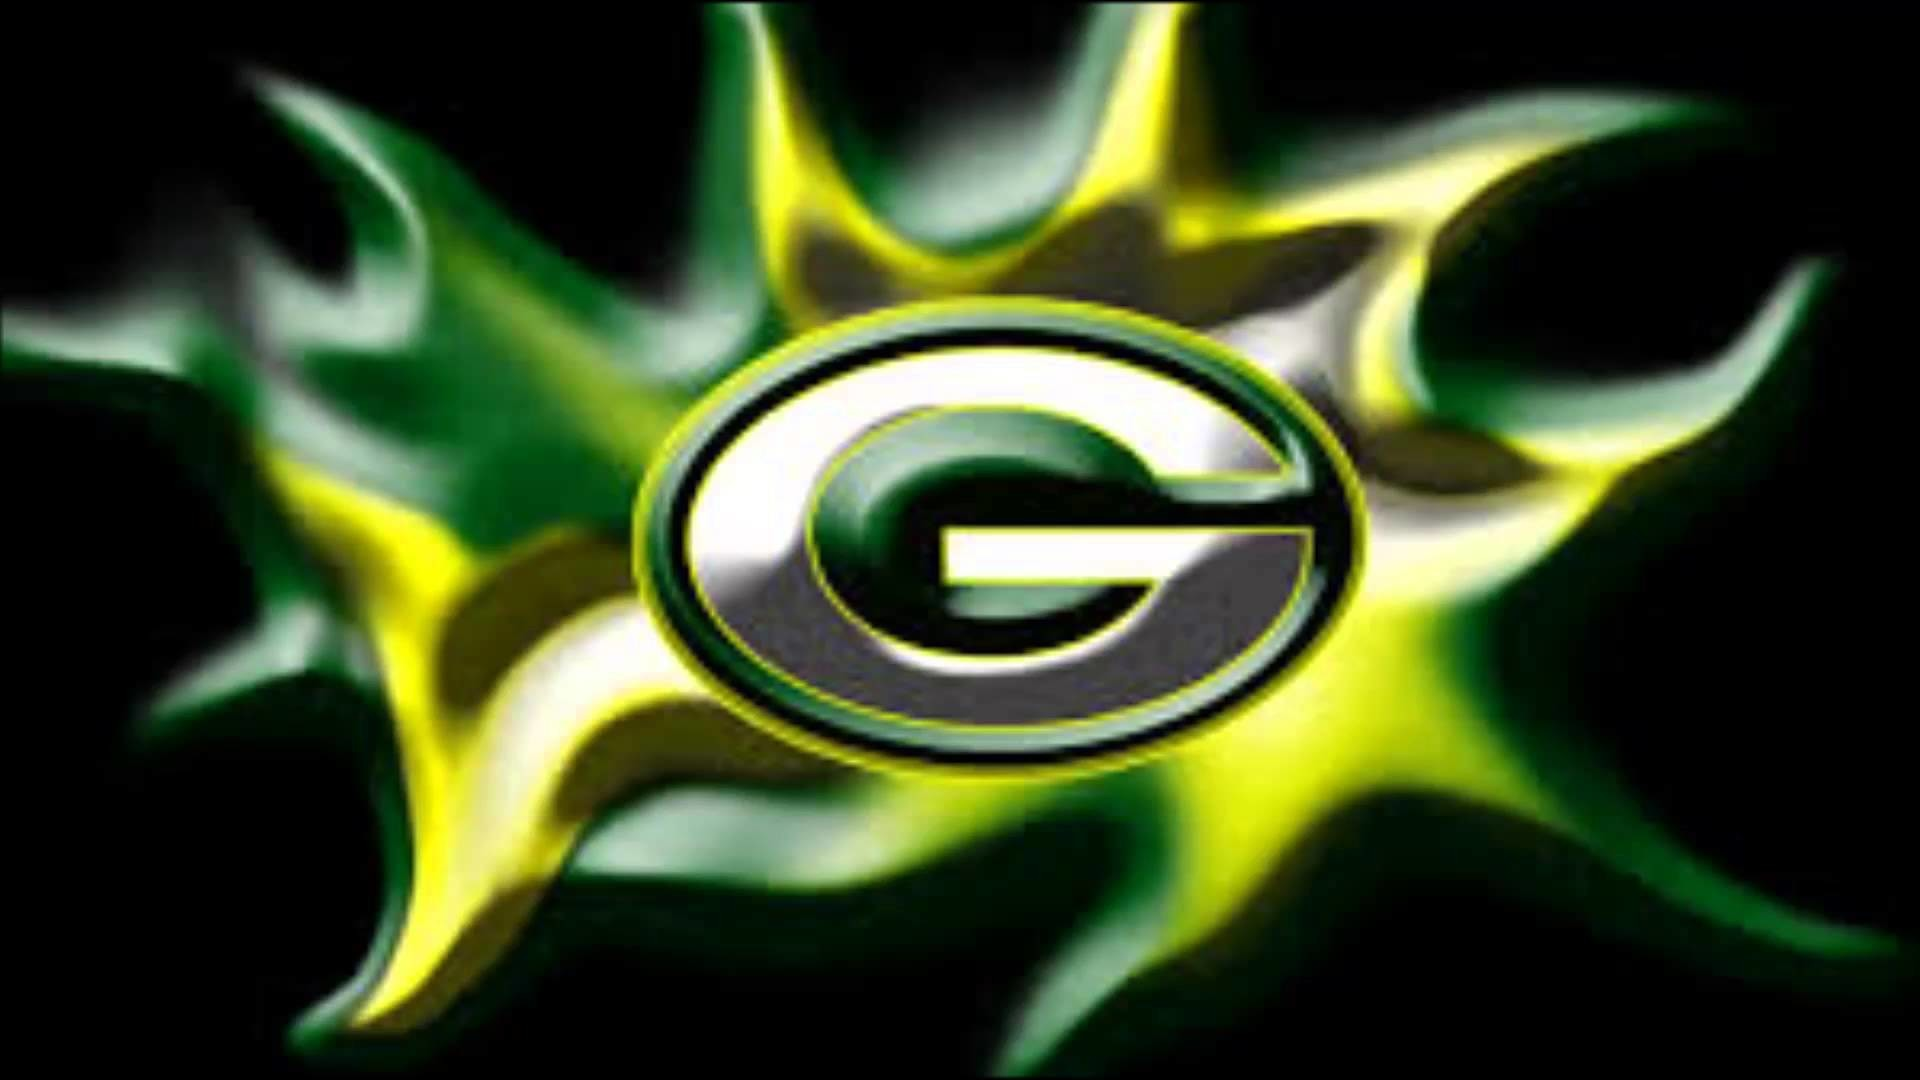 Green Bay Packers Images Wallpaper Logo (64+ images)